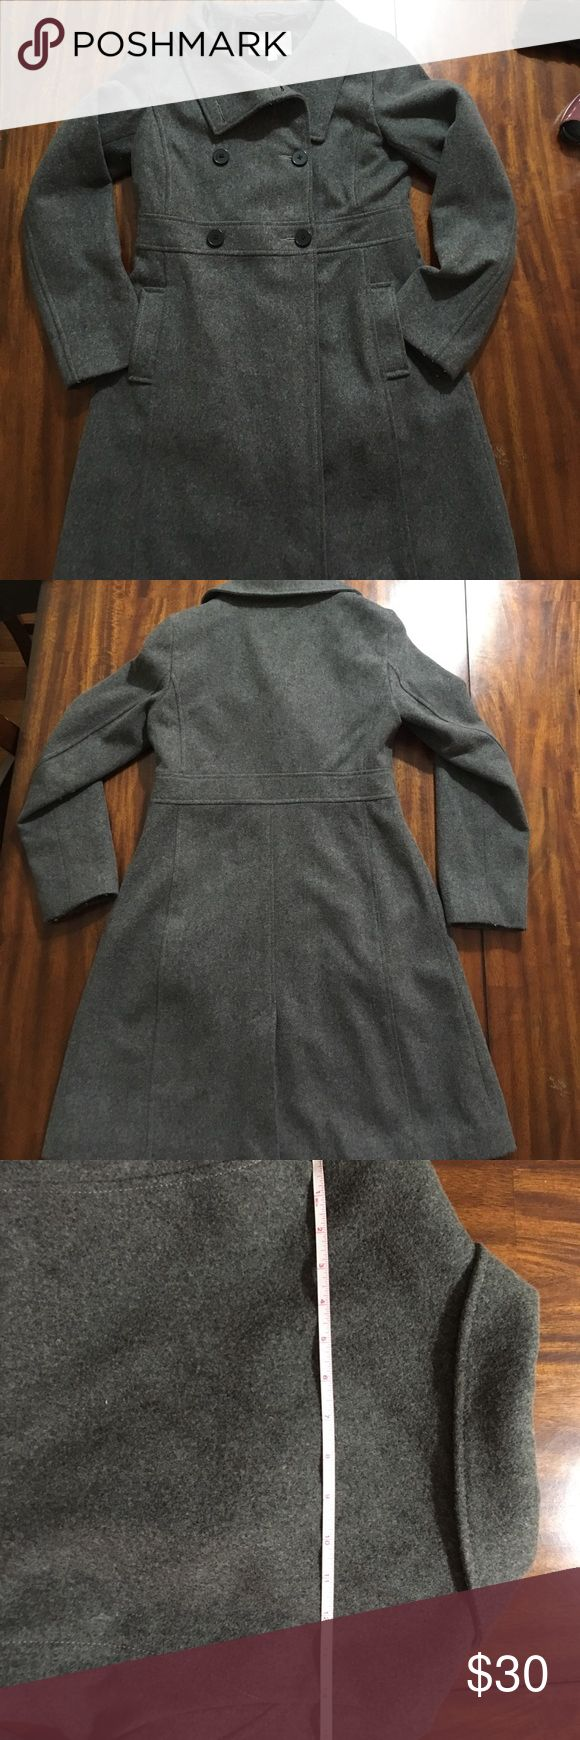 """Grey Old Navy Pea Coat, misses sz. Small Beautiful classic wool-blend Pea Coat from Old Navy with empire waist style. EUC, soft and warm. Measures 14"""" shoulder to shoulder and 35"""" from back collar to hem. Old Navy Jackets & Coats Pea Coats"""